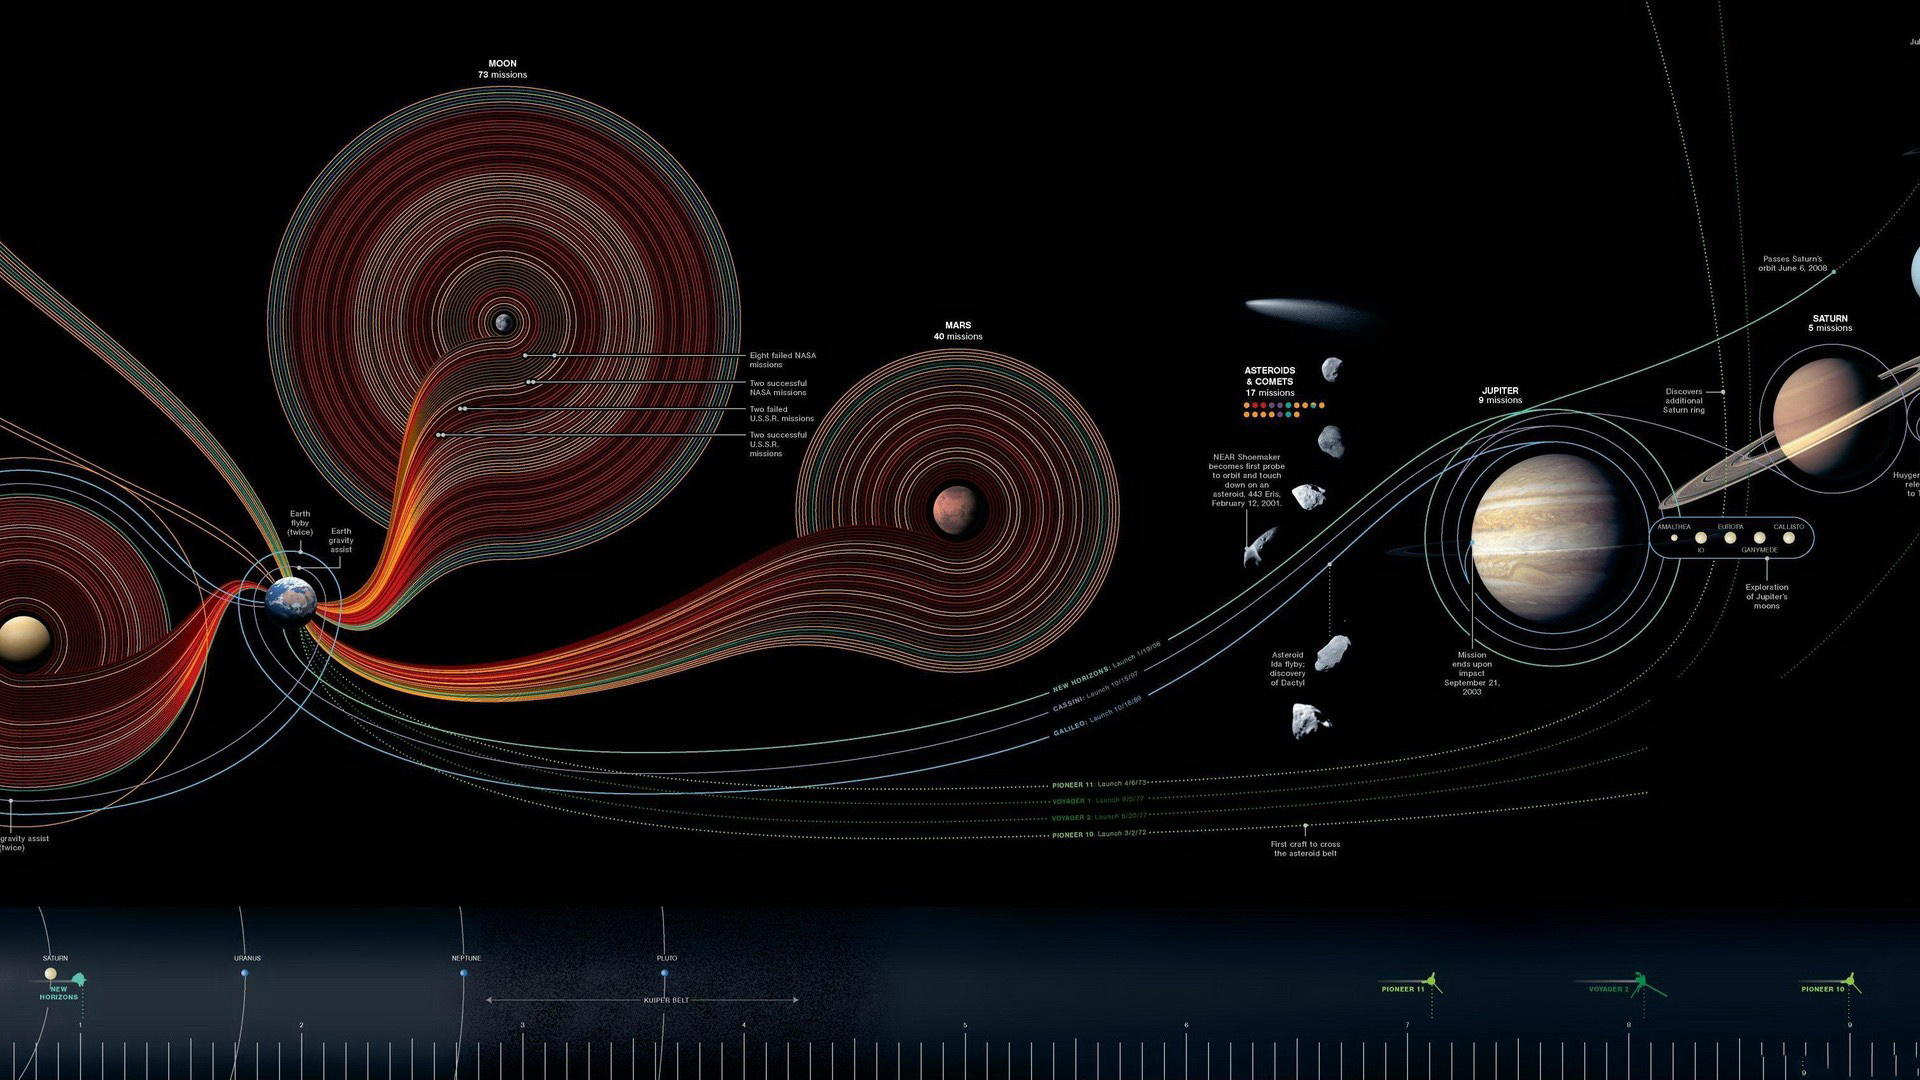 planets and outer space diagram - photo #2